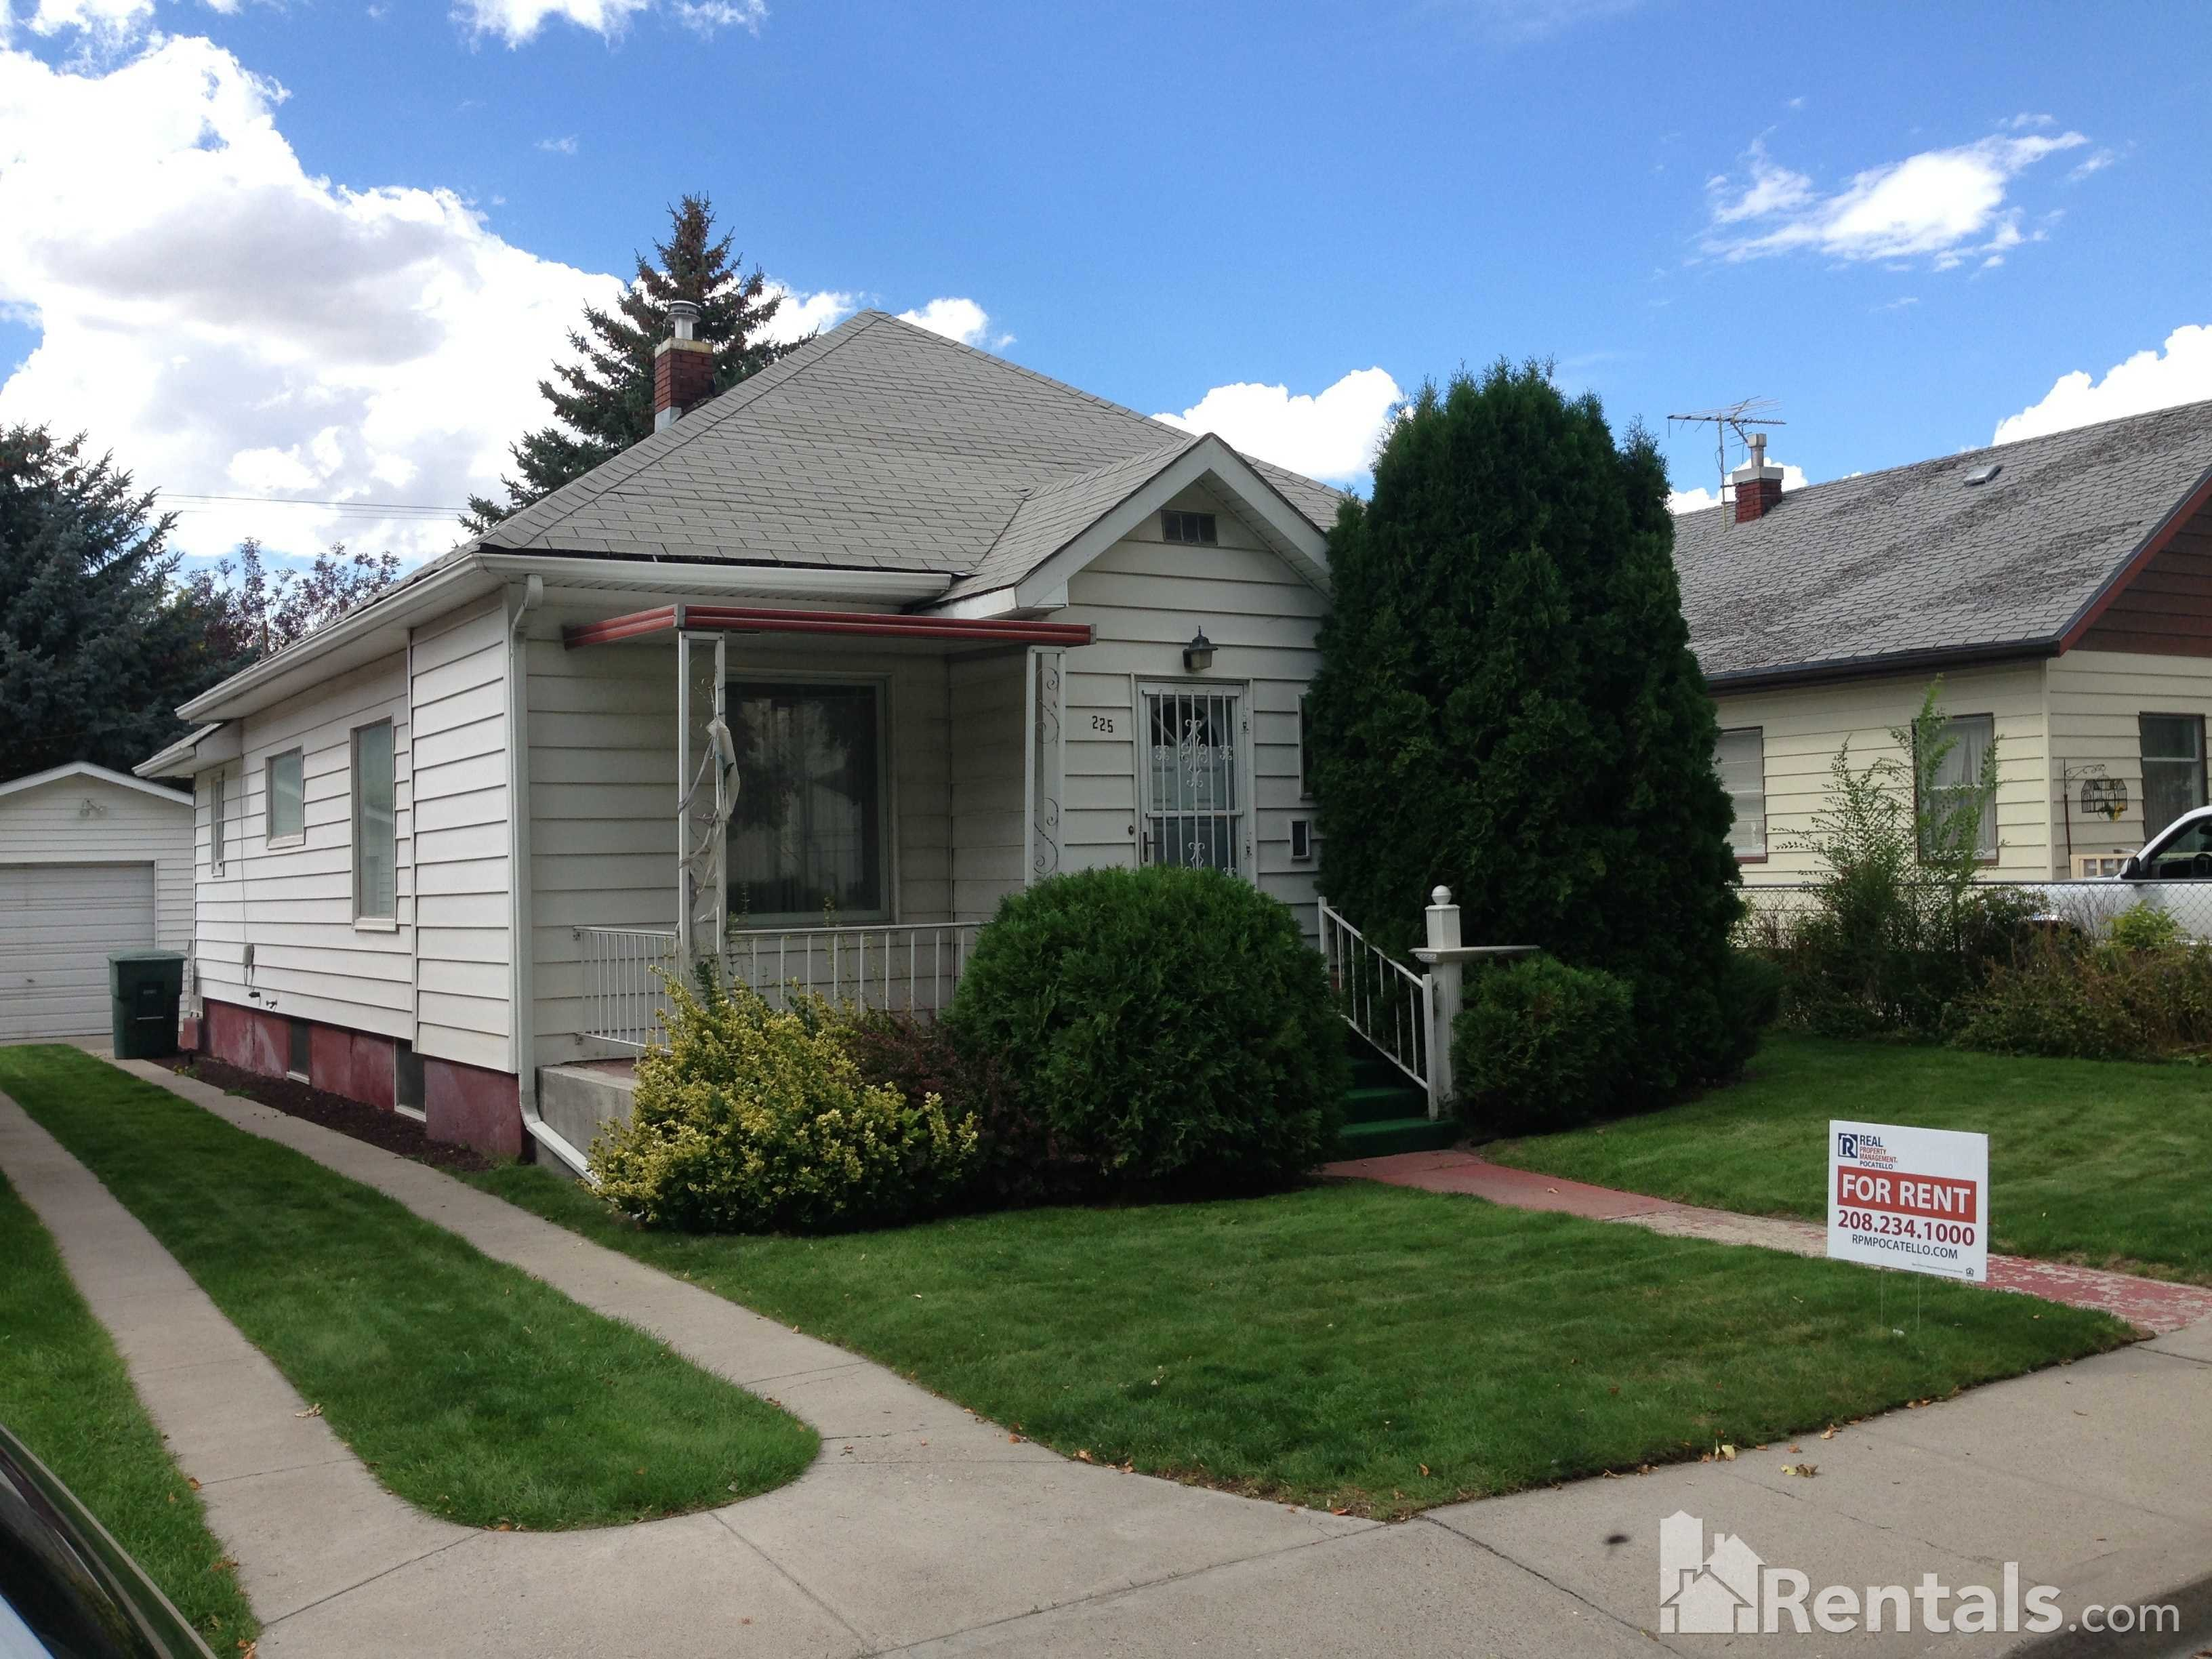 Best Pocatello Houses For Rent In Pocatello Homes For Rent Idaho With Pictures